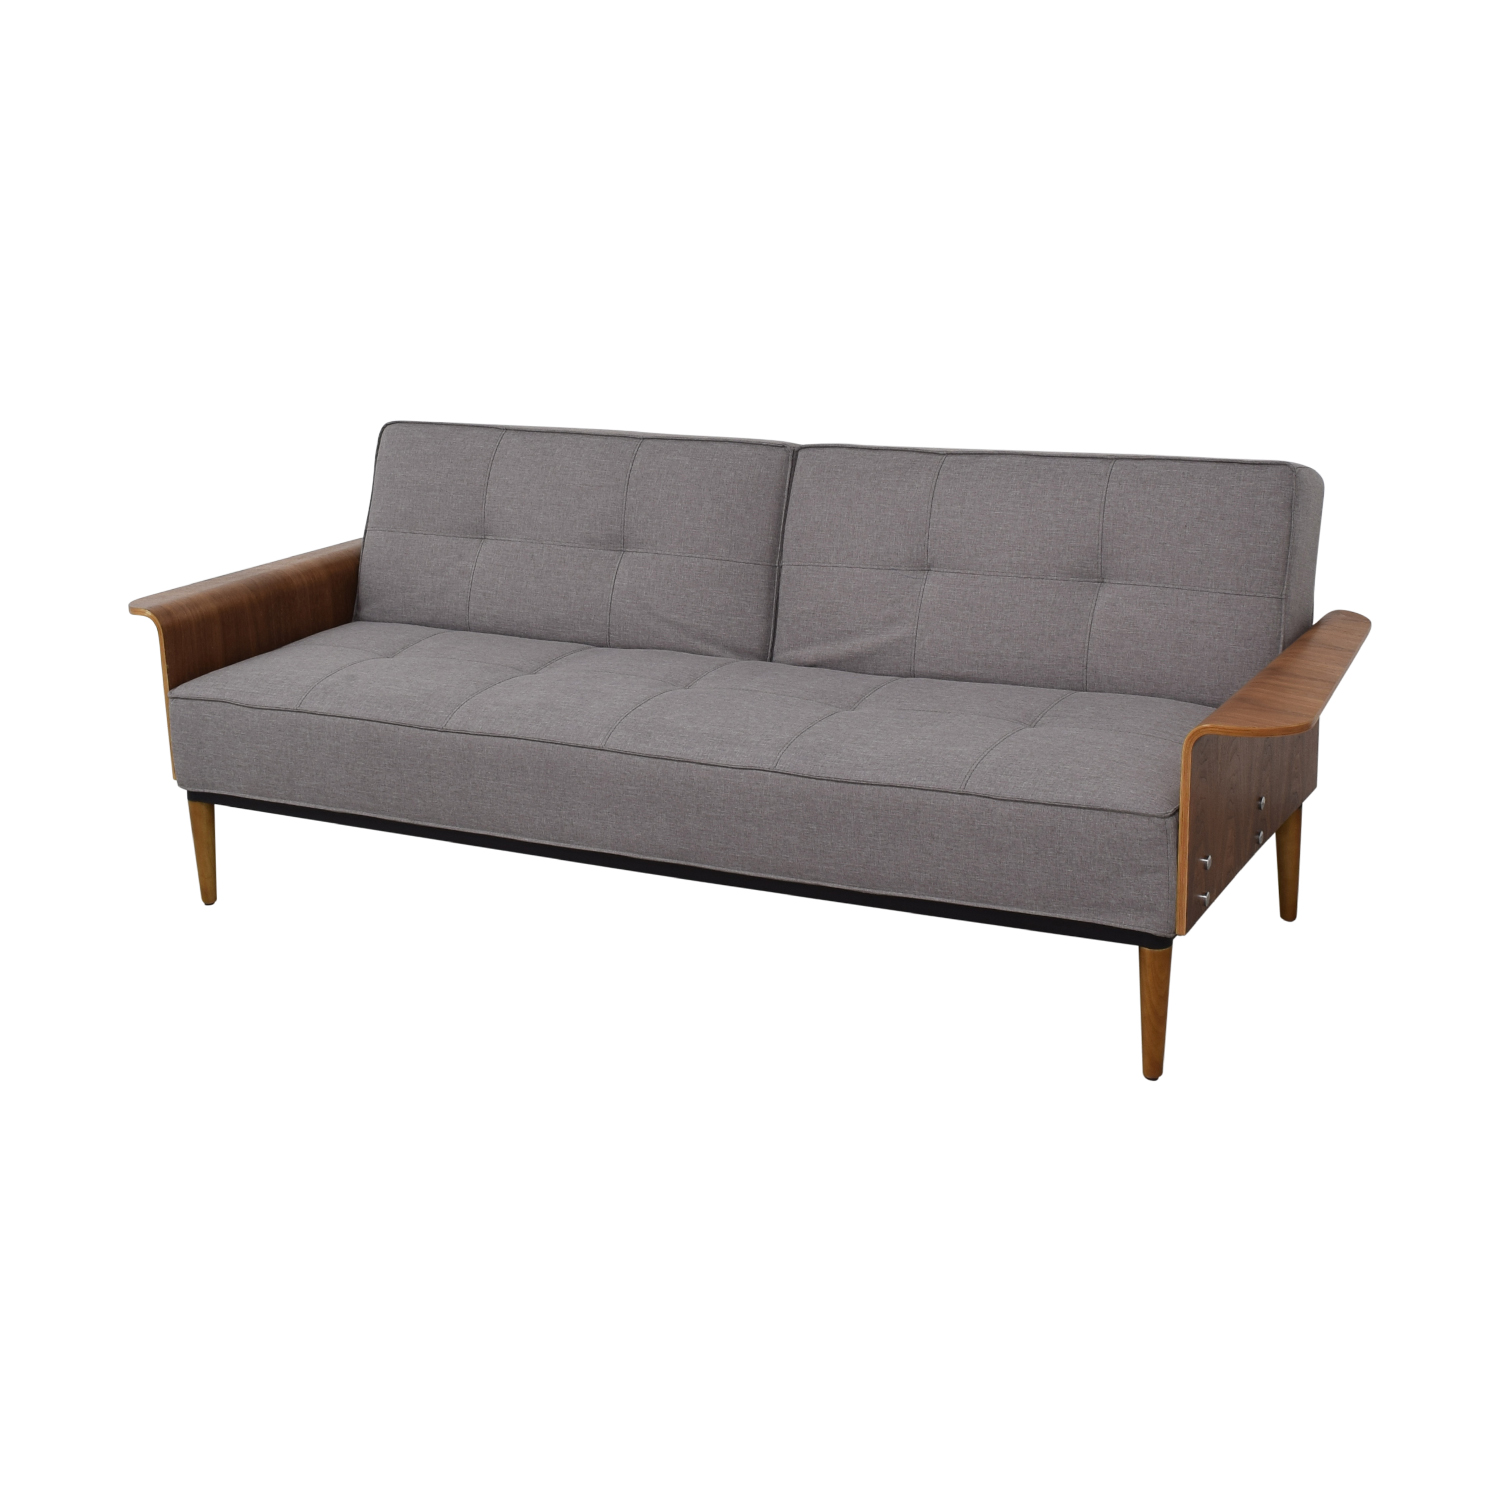 Inmod Inmod Bjorg Grey Tufted Twin Sofa Bed coupon